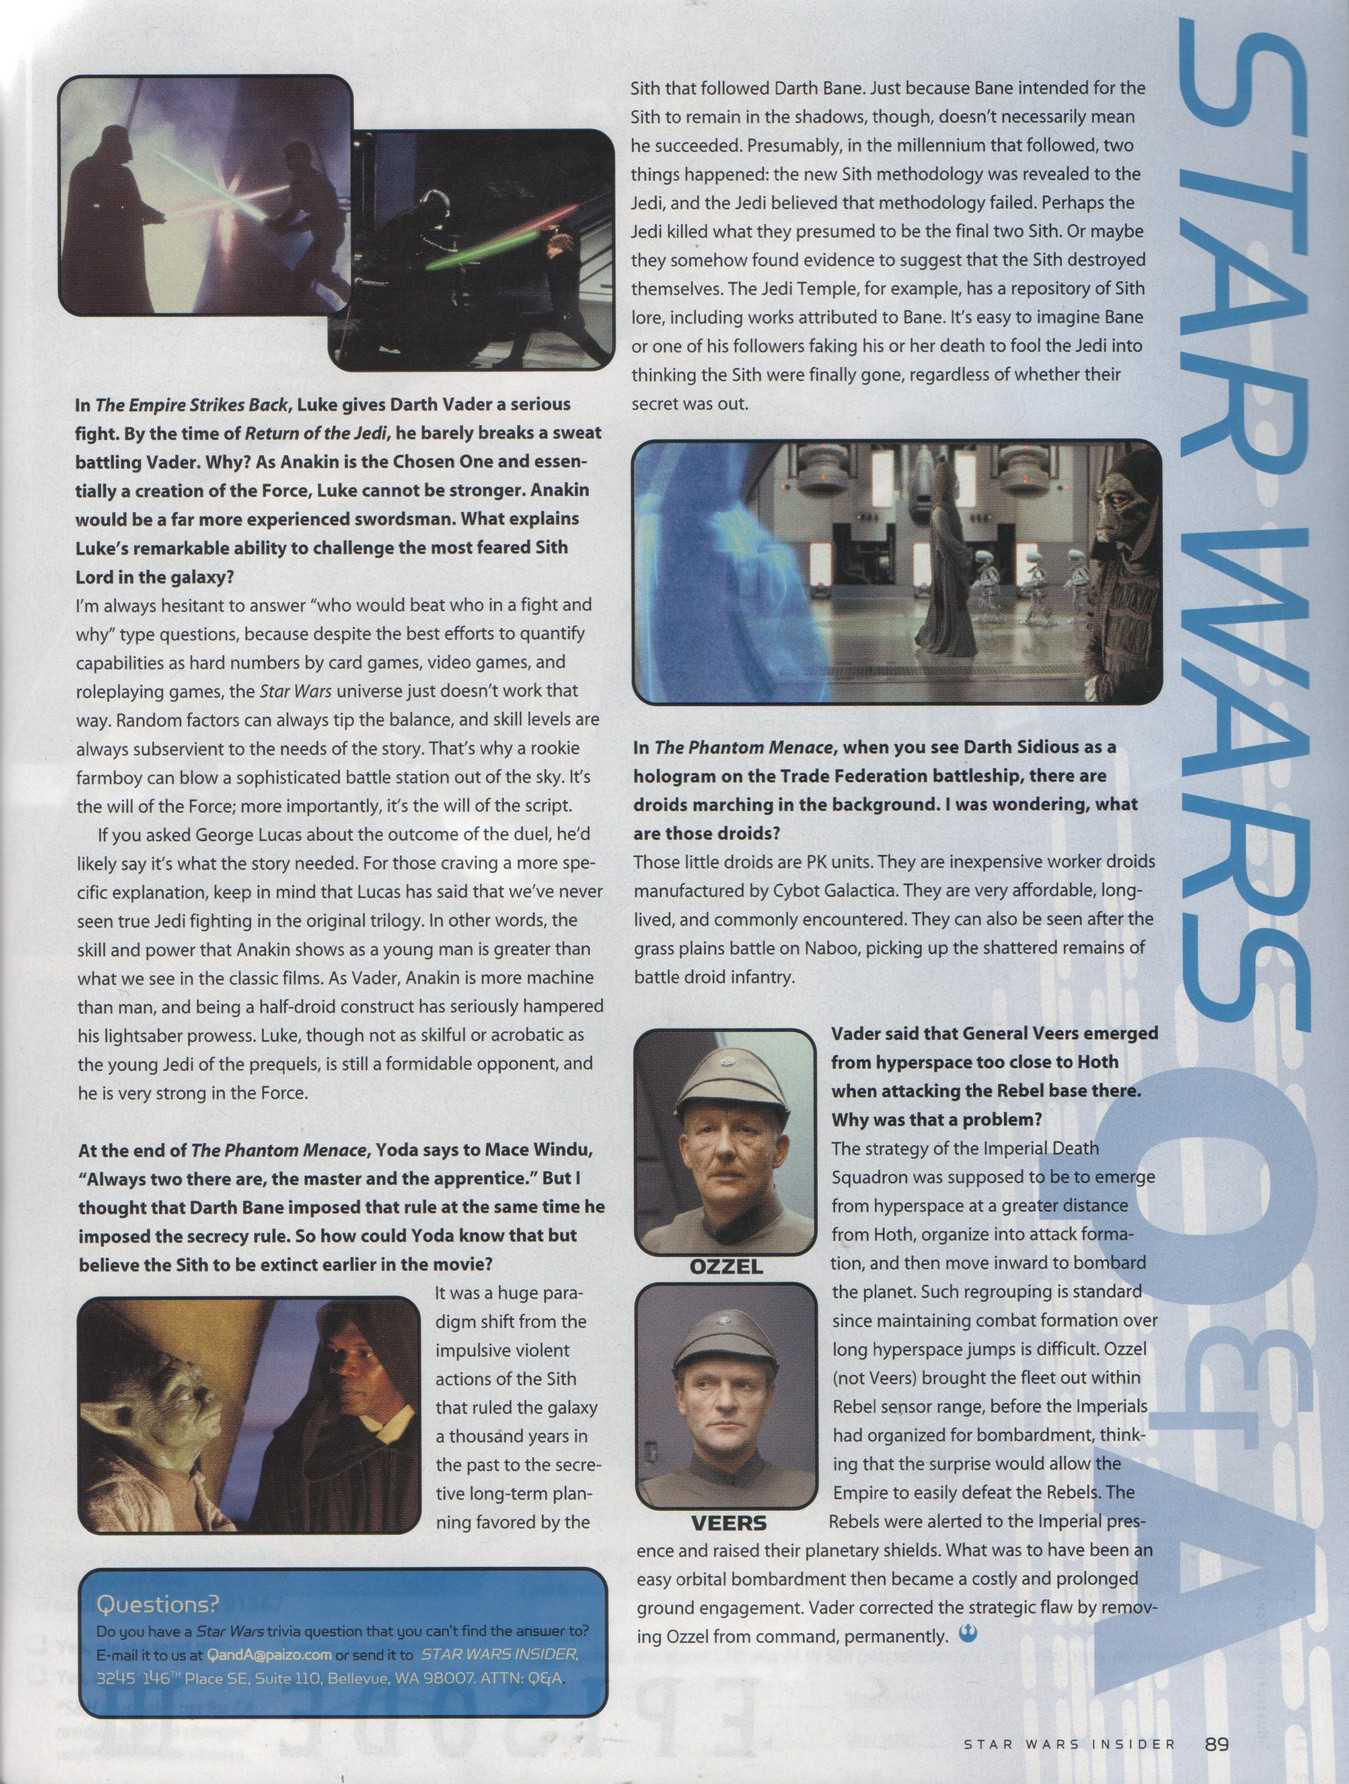 Is this a confirmation that RotS Anakin > RotJ Luke? SW072-085